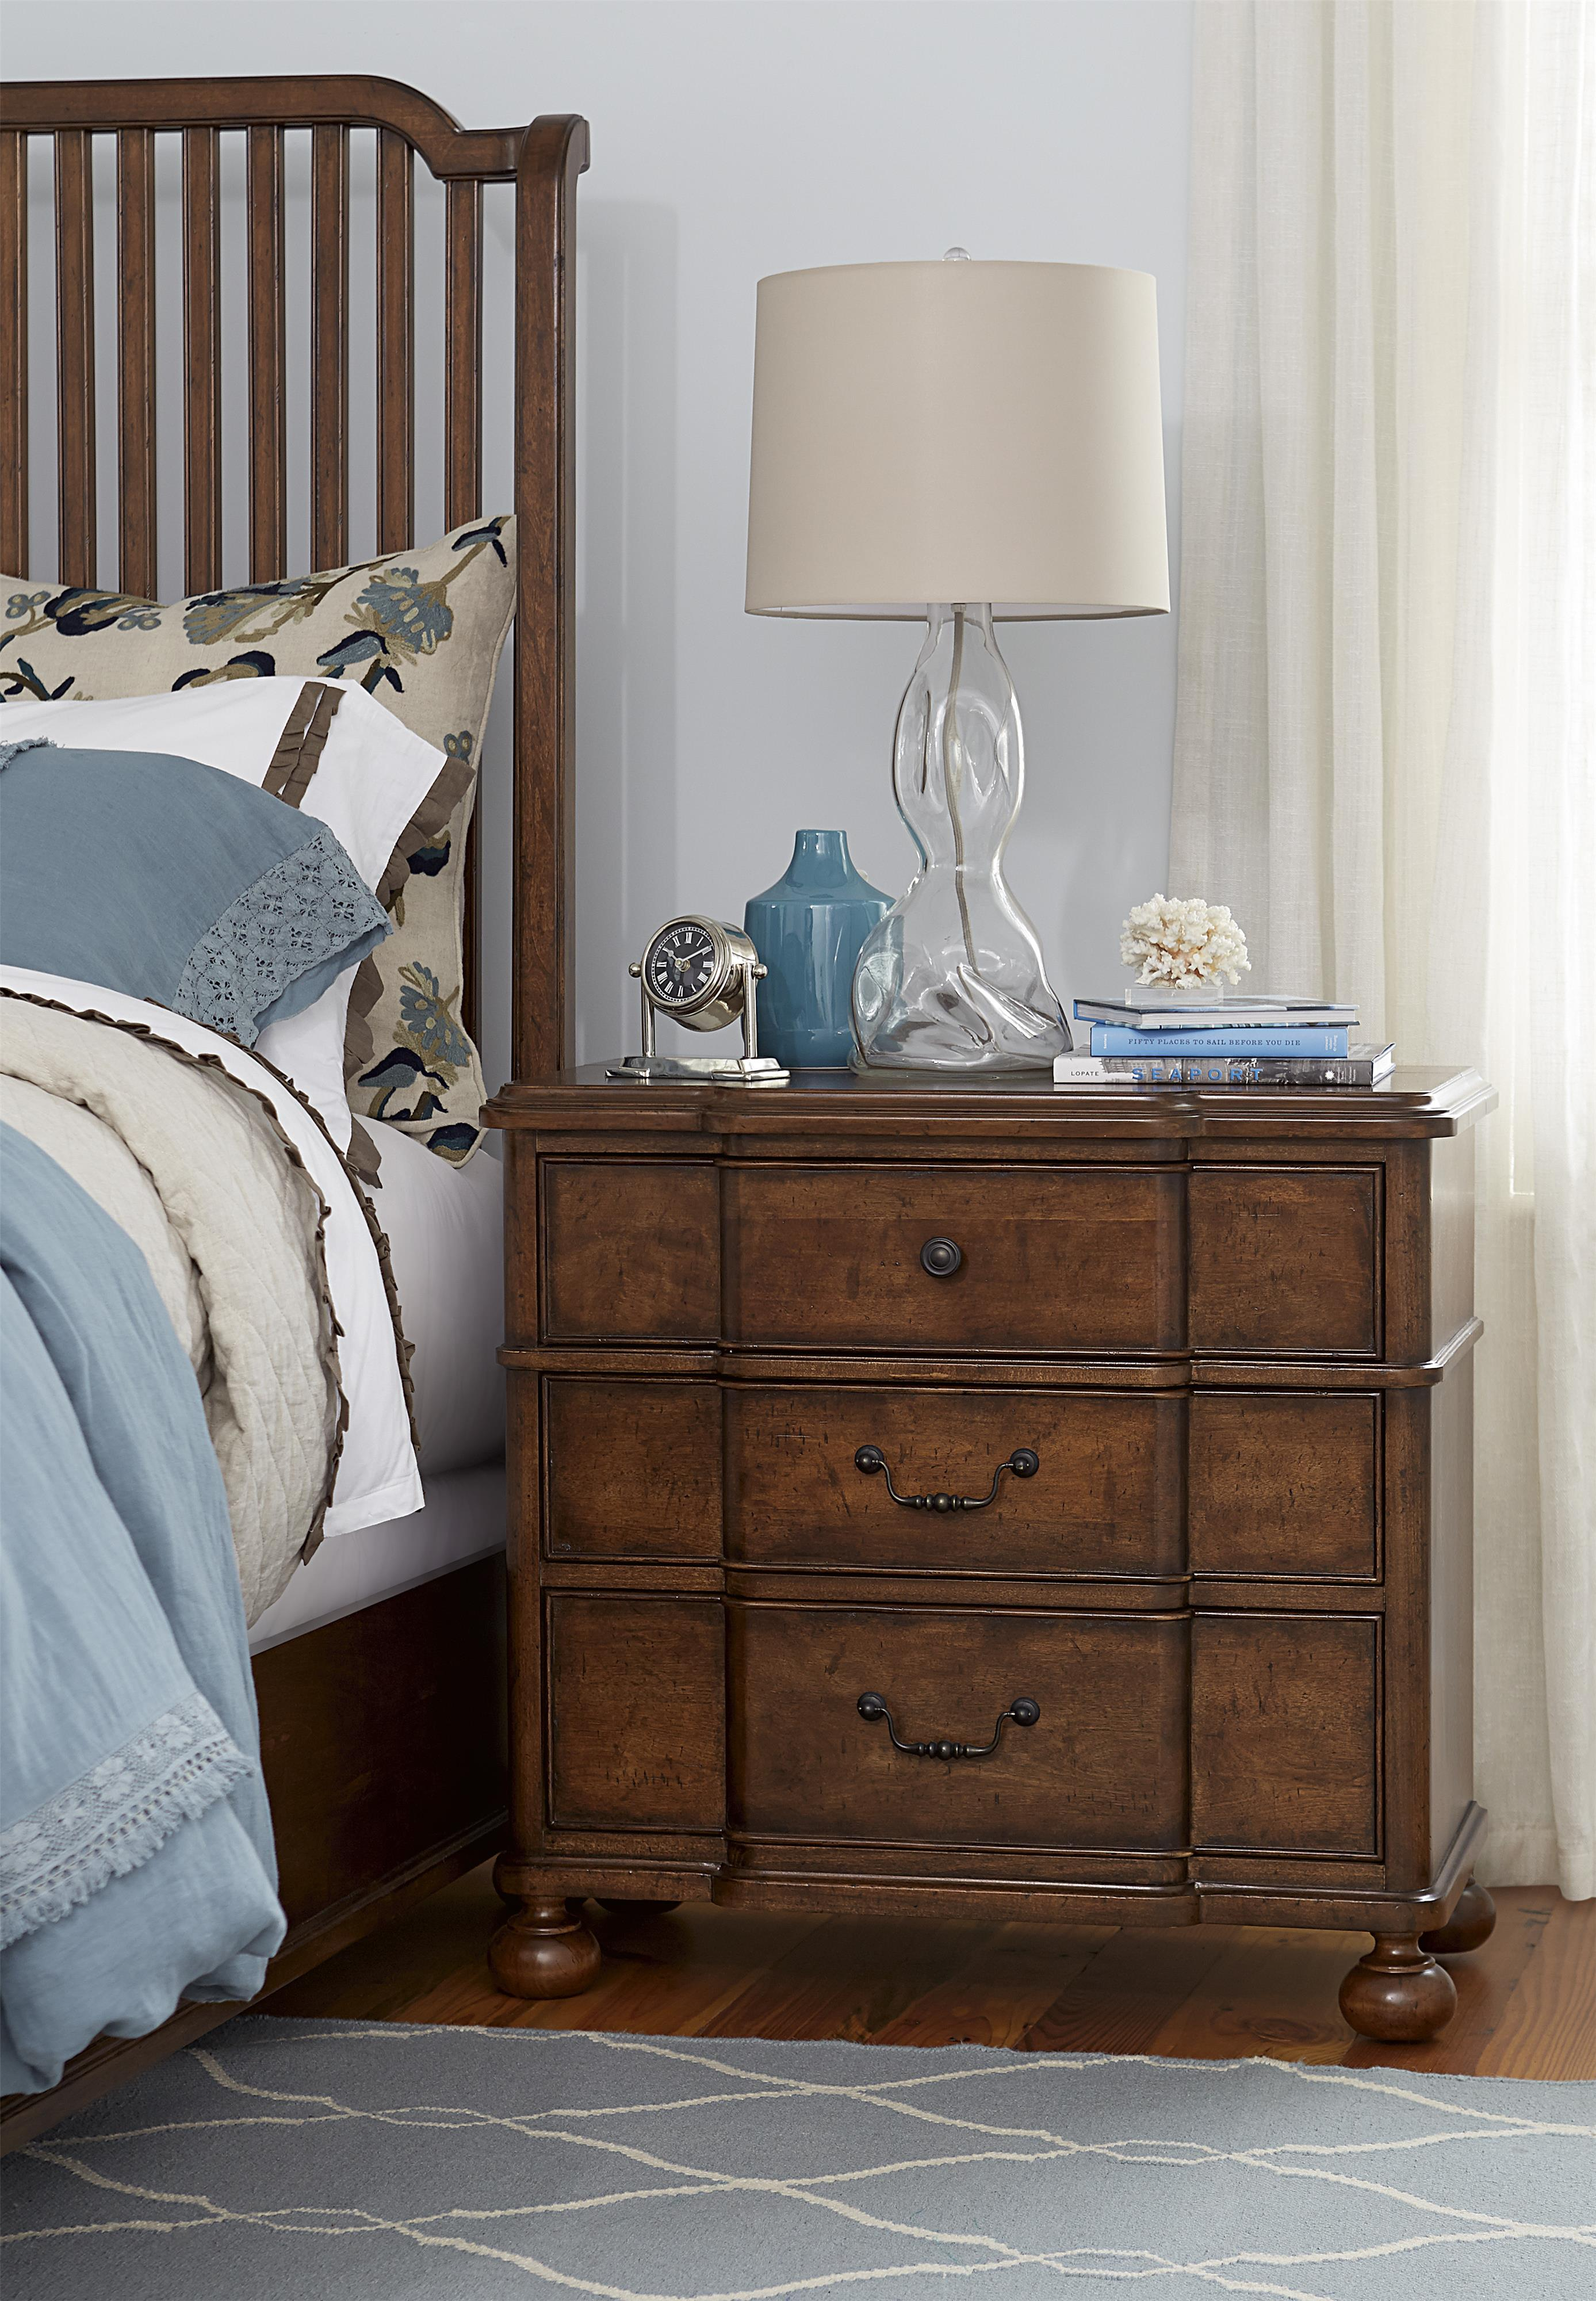 Paula Deen By Universal Dogwood 596350 Nightstand With Outlet Baer 39 S Furniture Night Stands